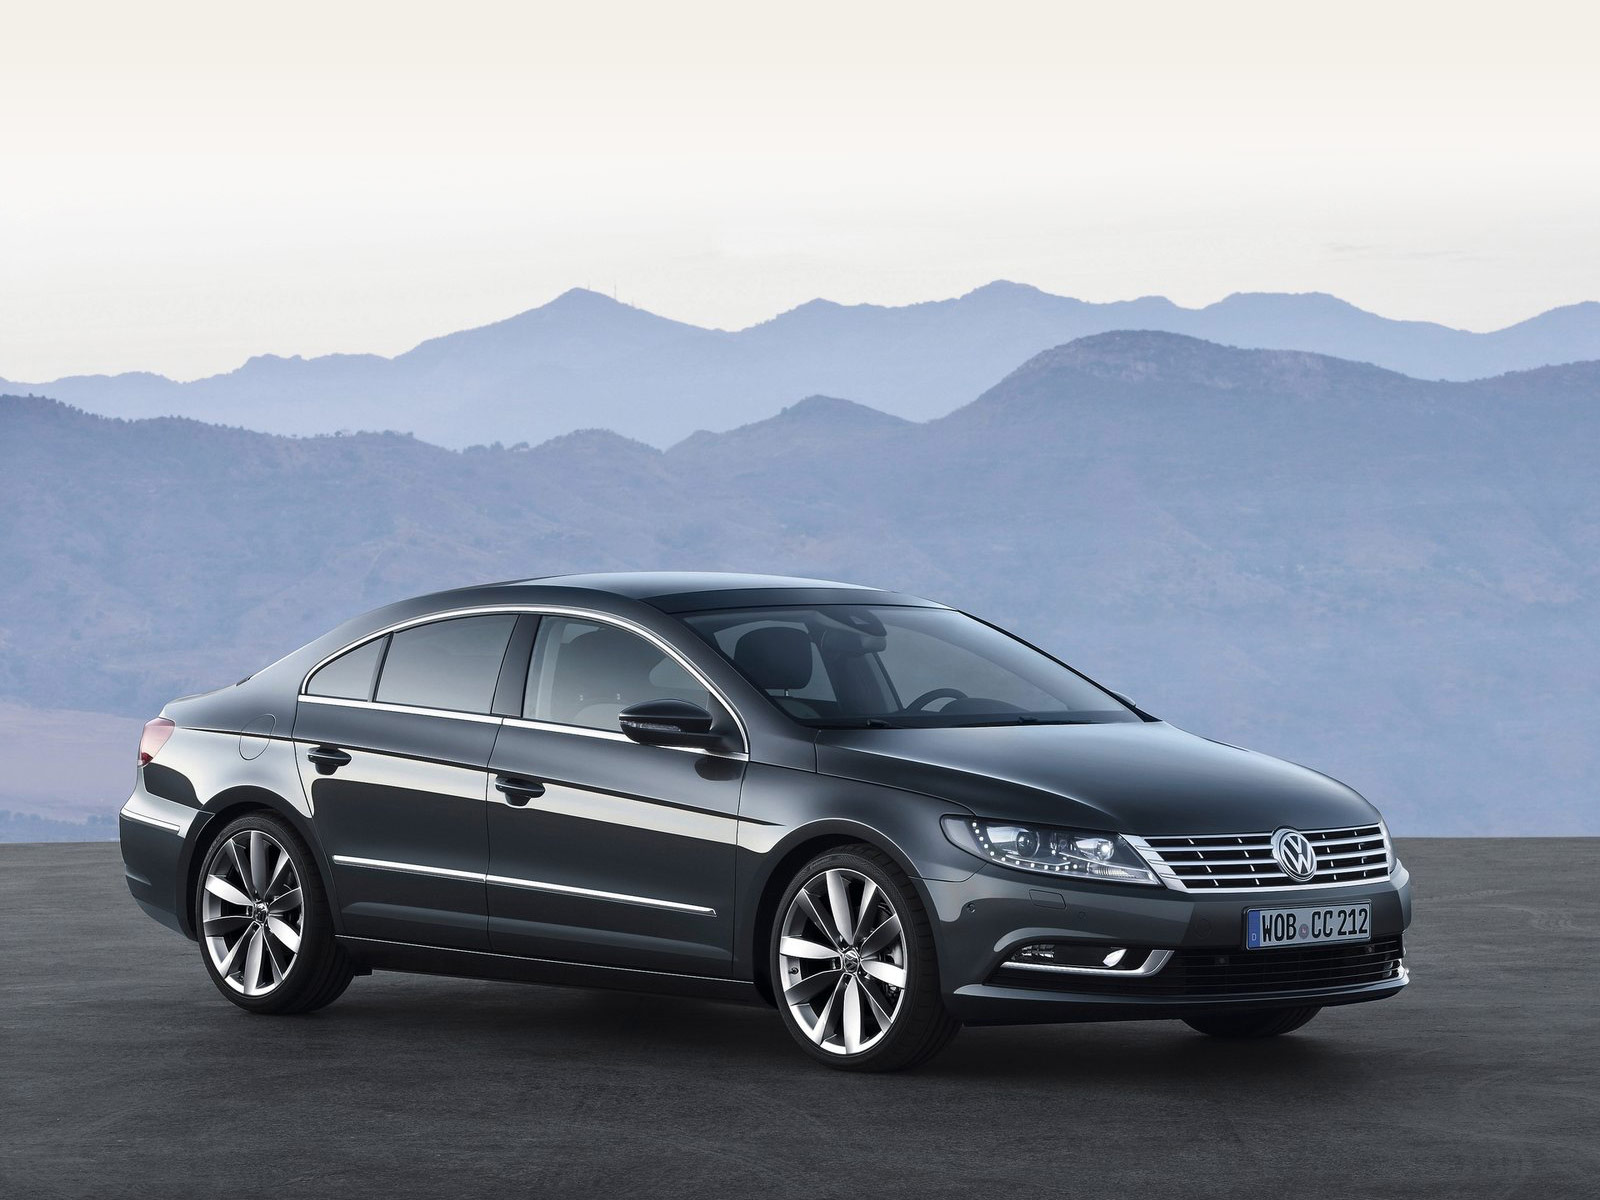 volkswagen wallpapers all volkswagen models 2013 volkswagen passat cc wallpapers car review. Black Bedroom Furniture Sets. Home Design Ideas